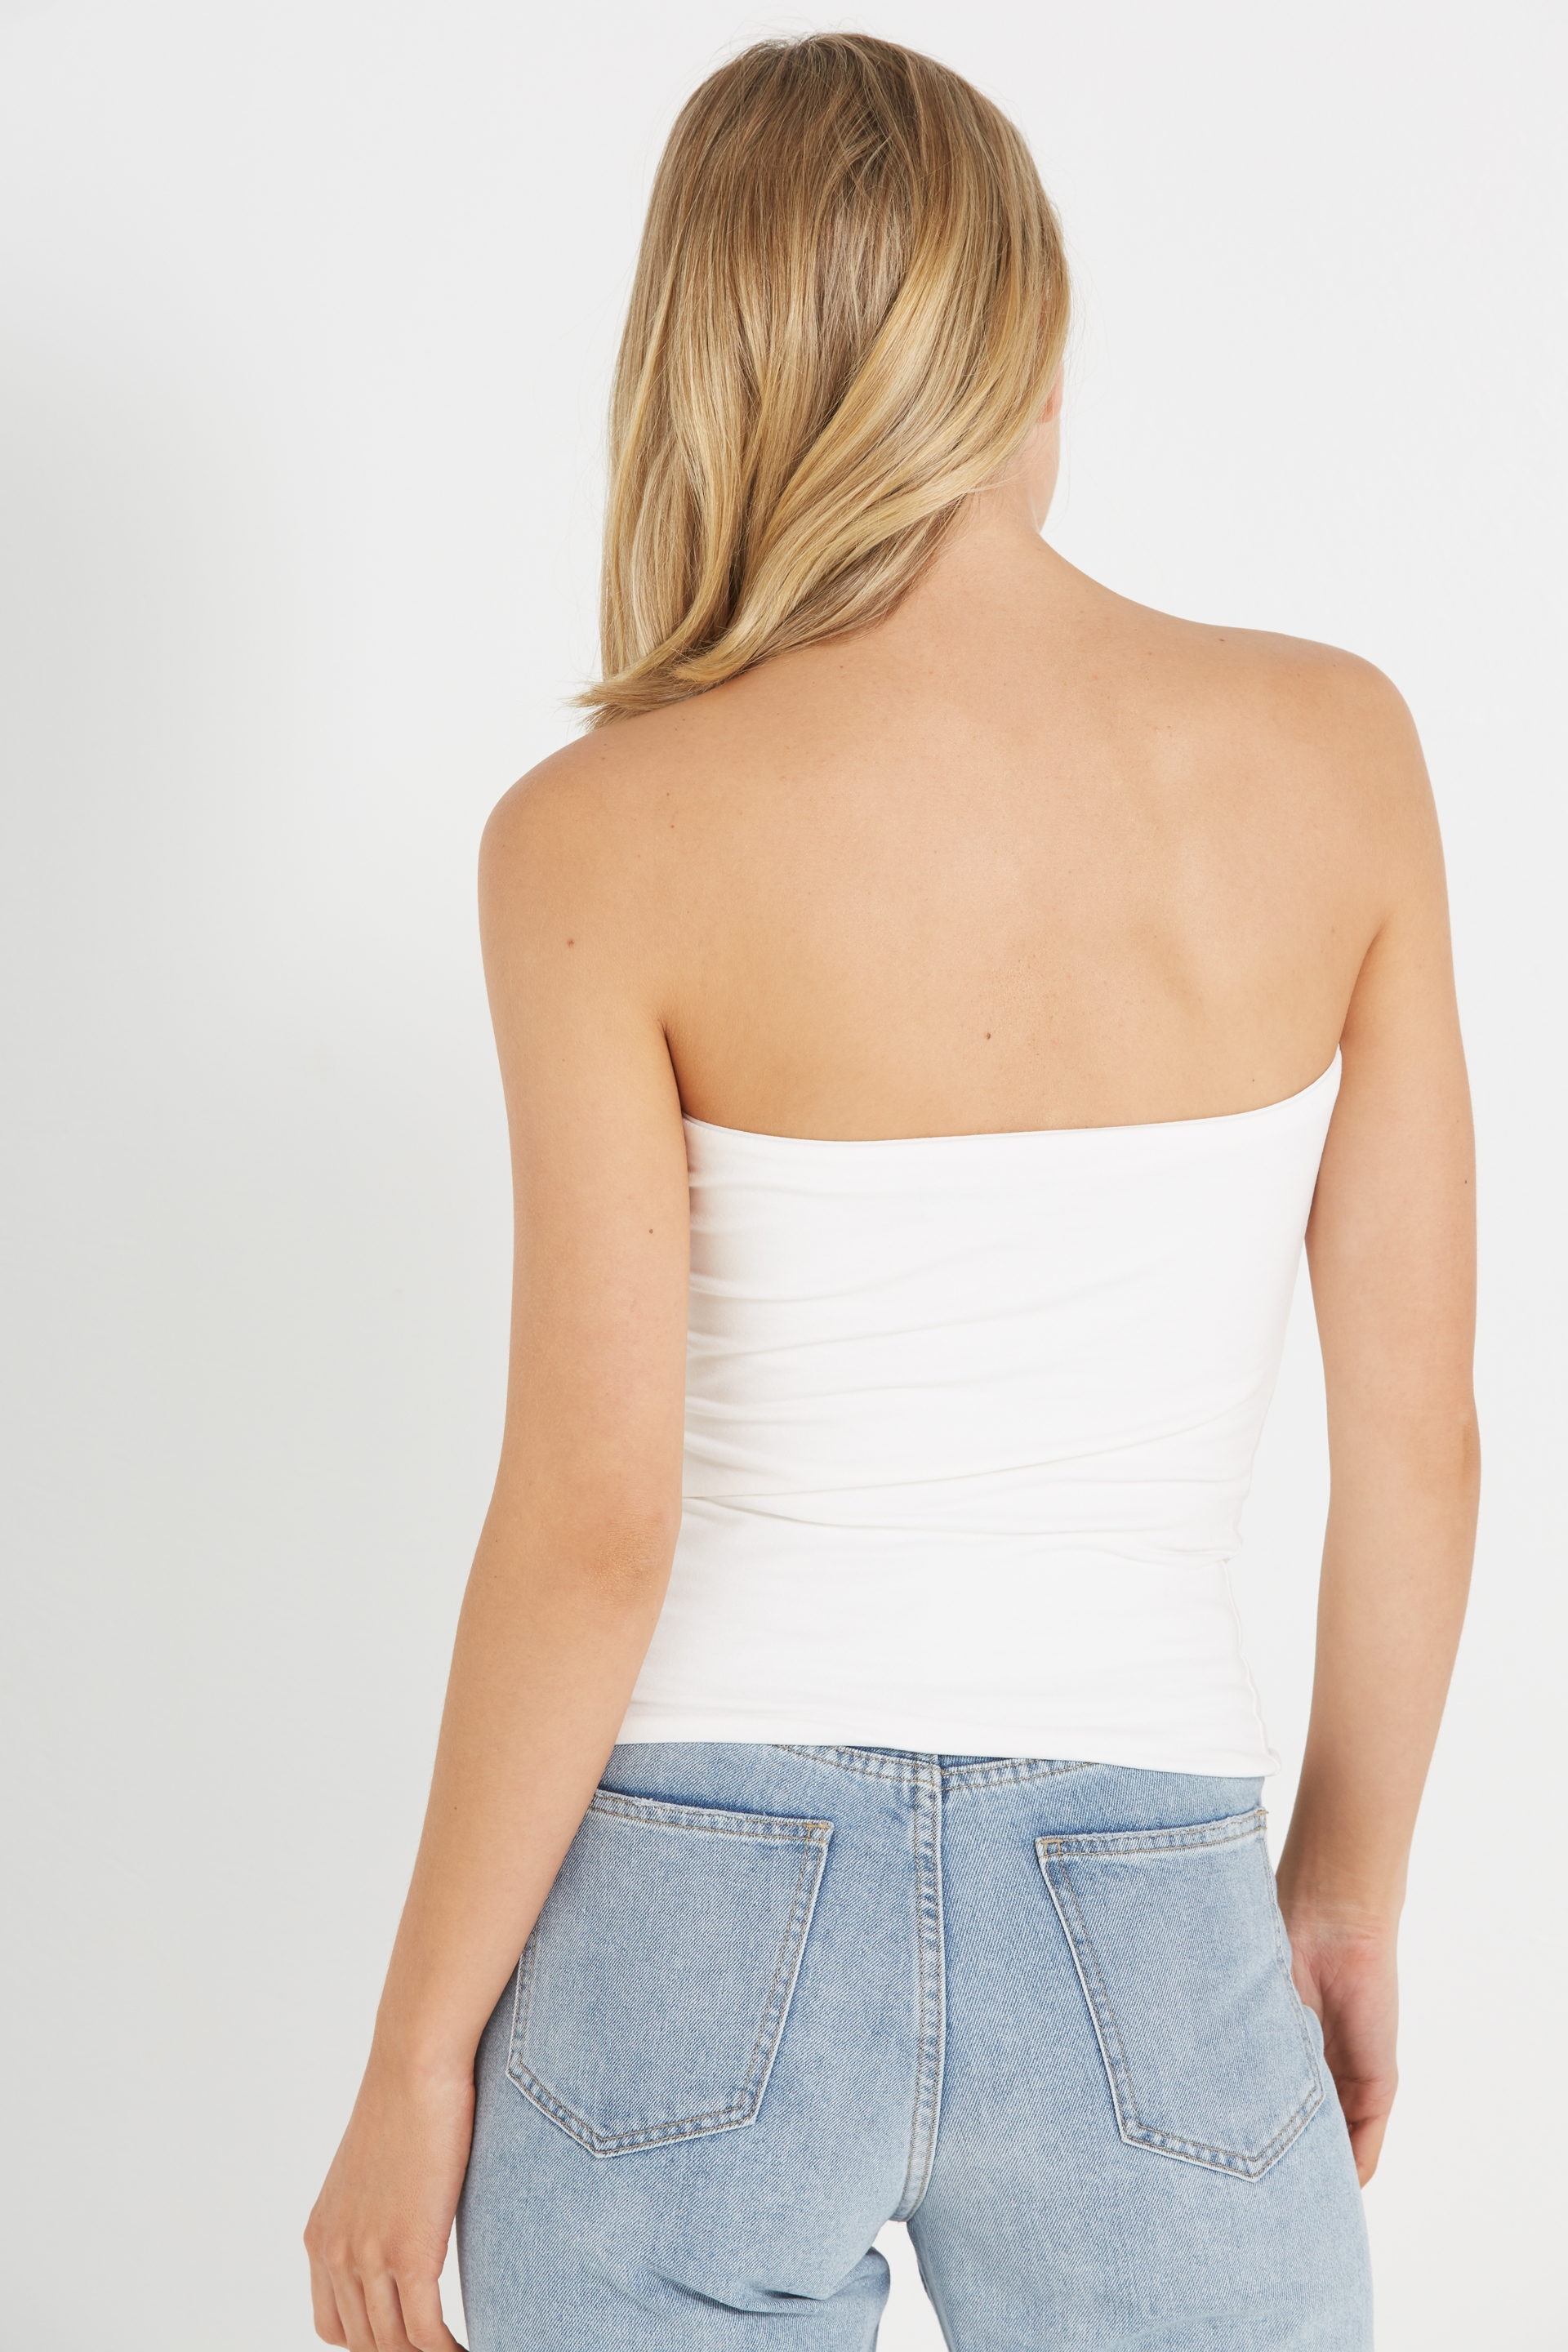 bceaa7b43d ... Mia Strapless Tube Top